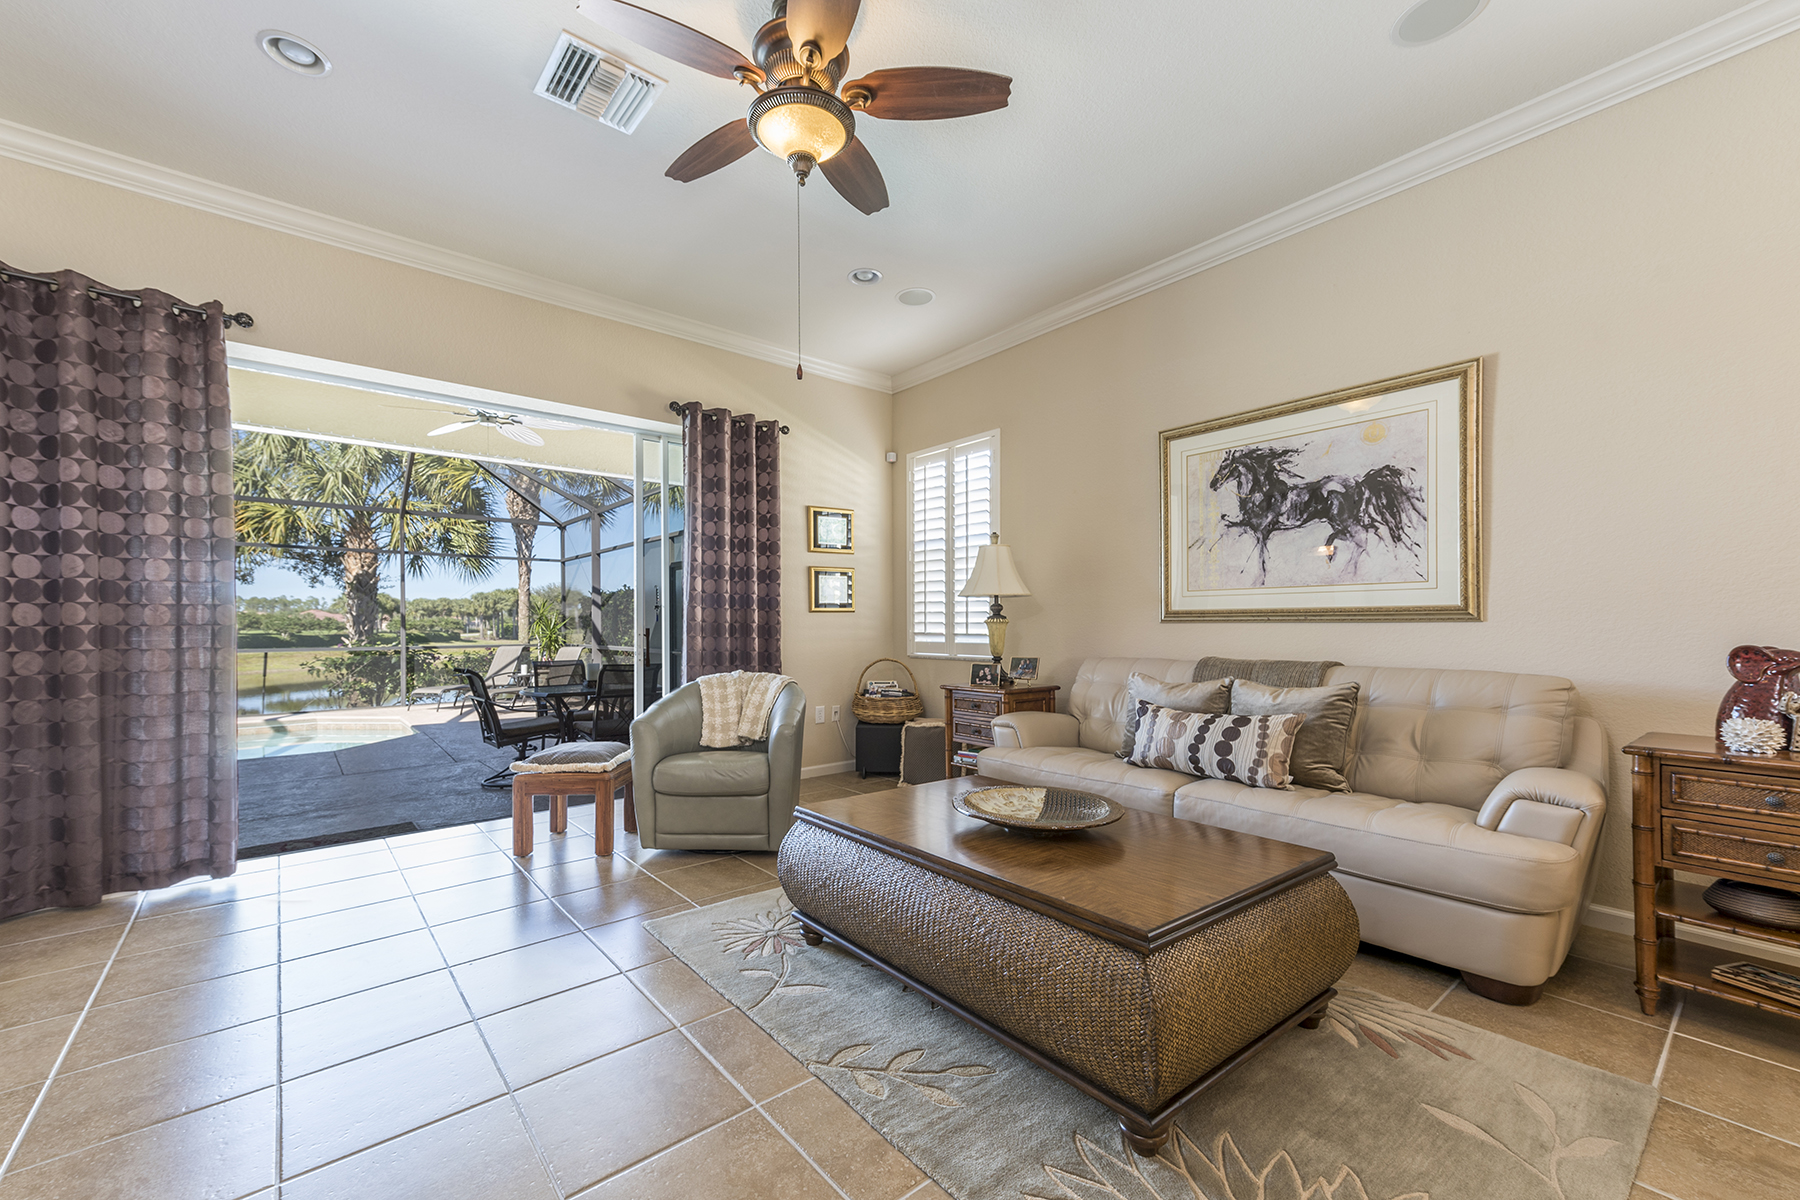 Single Family Home for Sale at HAWTHORNE - COBBLESTONE 10373 Flat Stone Loop, Bonita Springs, Florida 34135 United States